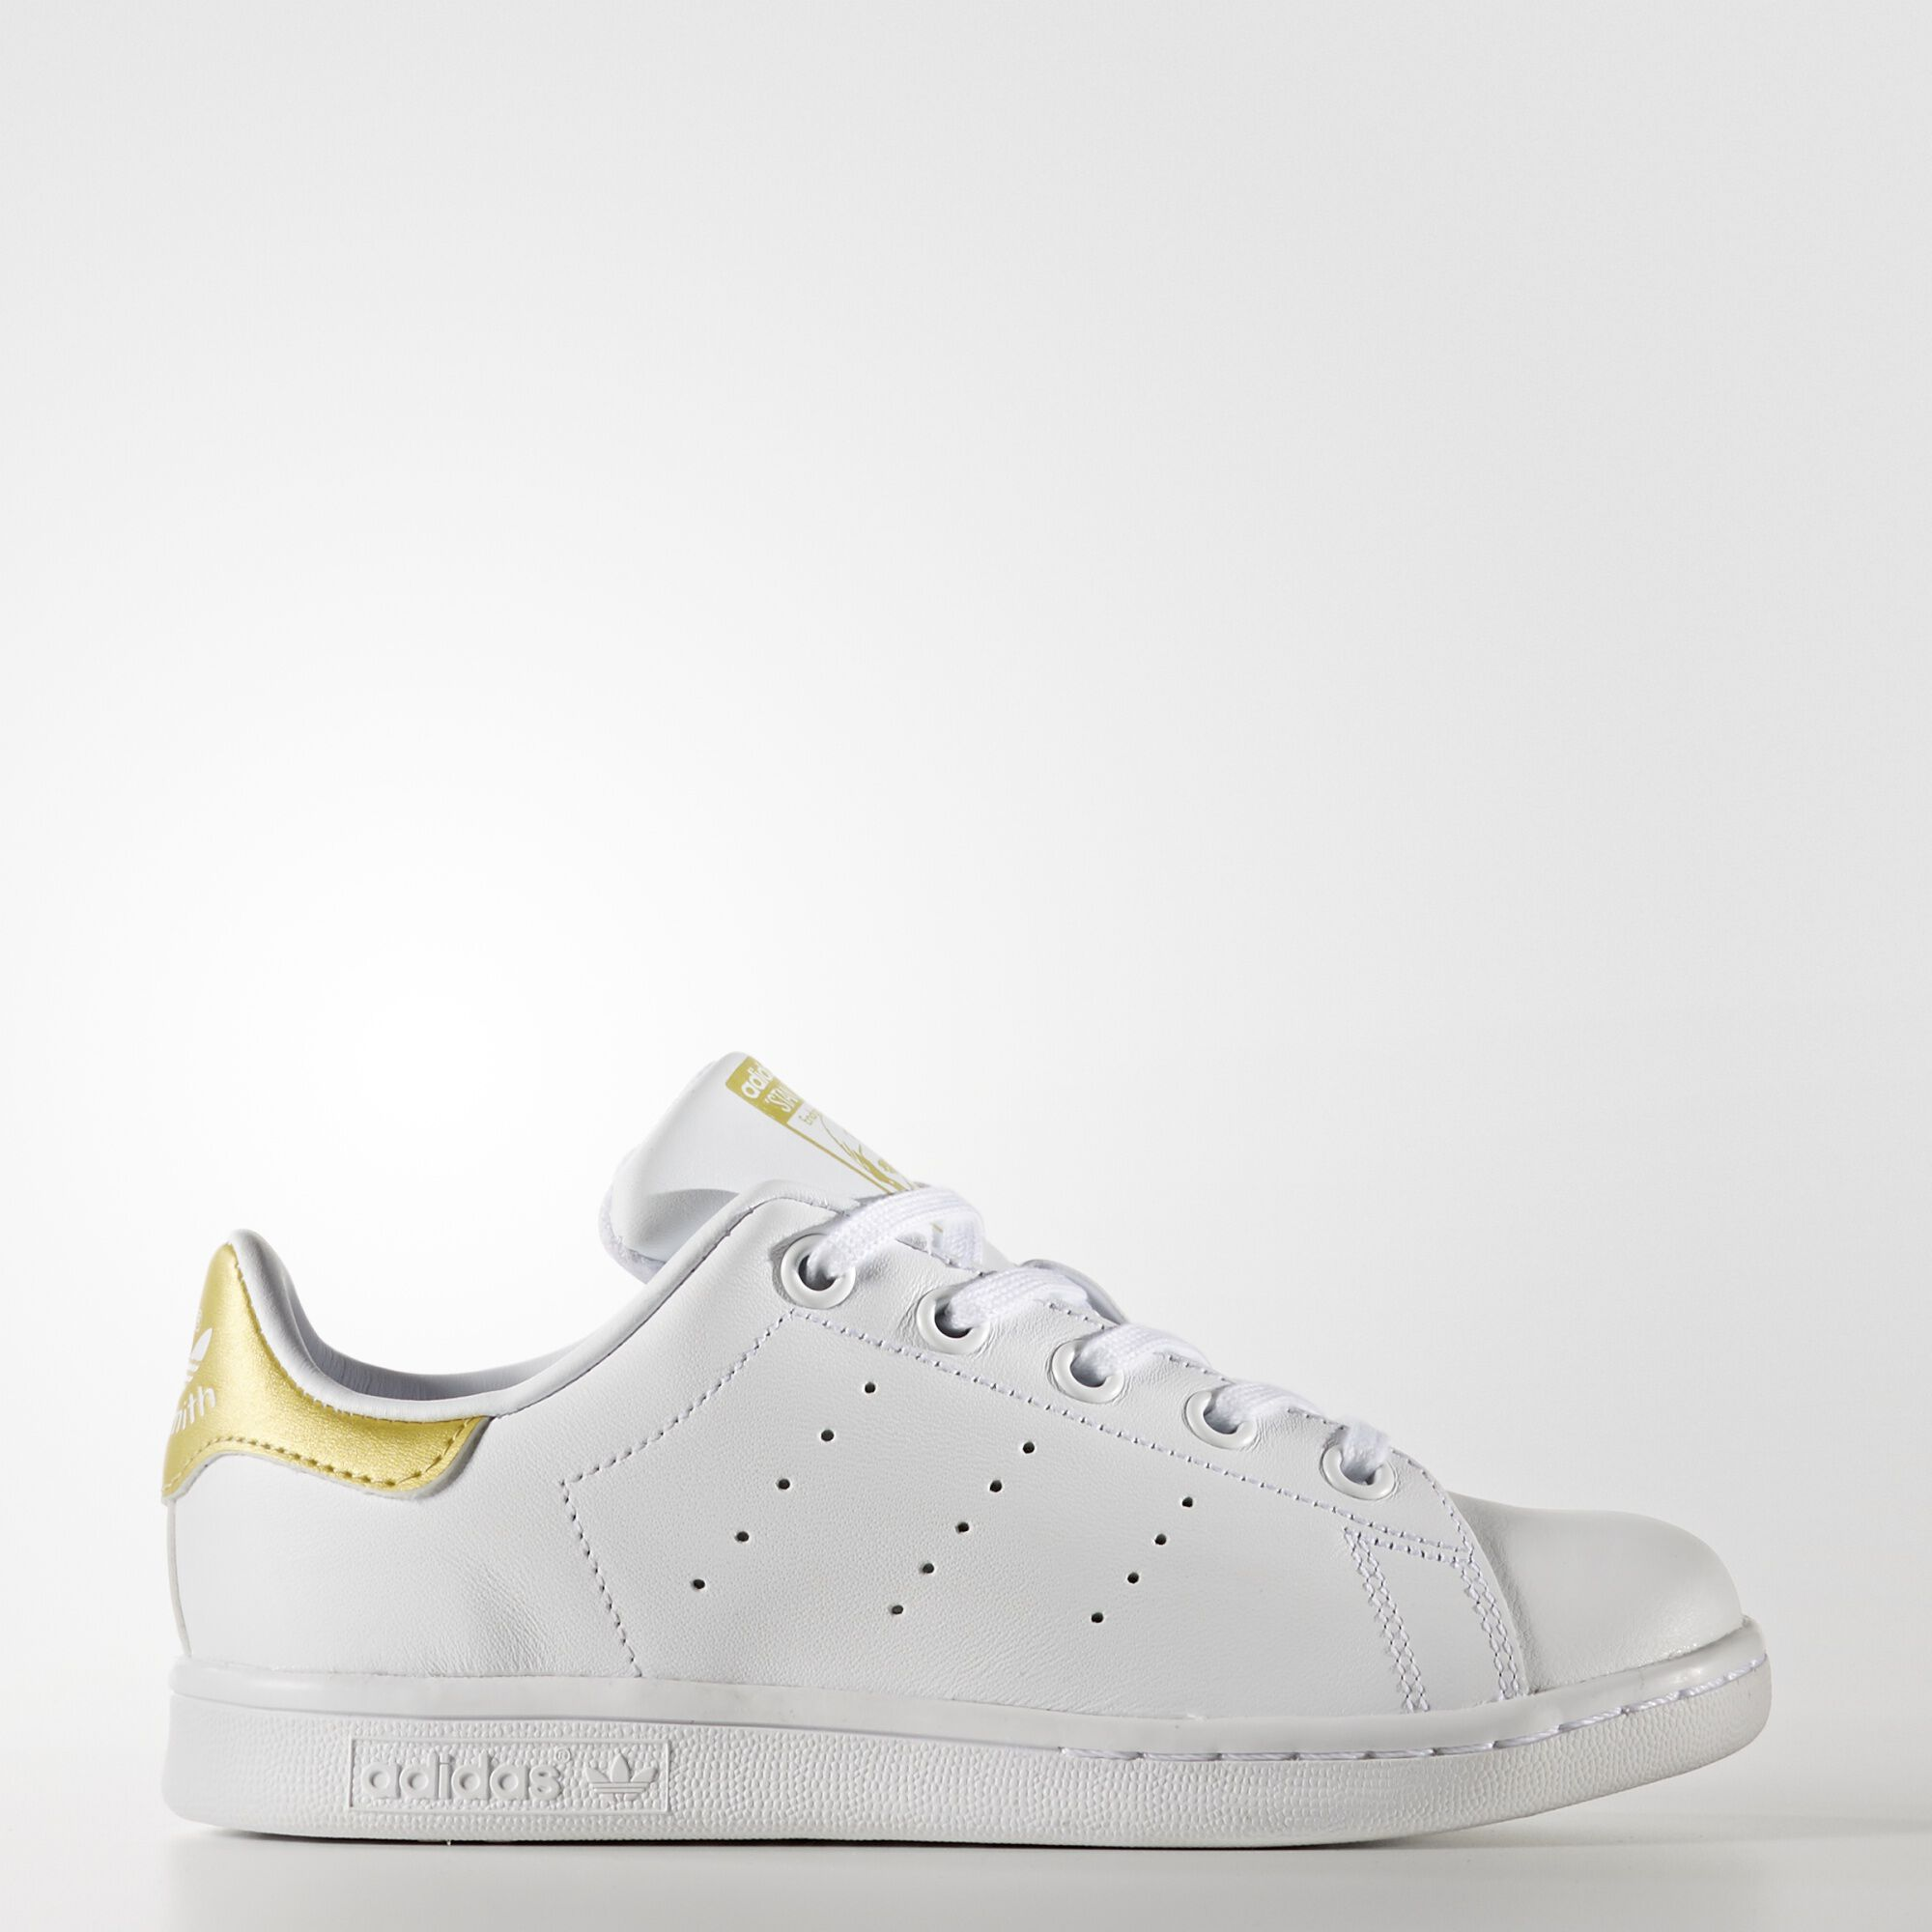 adidas - Stan Smith Shoes Running White Ftw / Running White Ftw / Gold ...